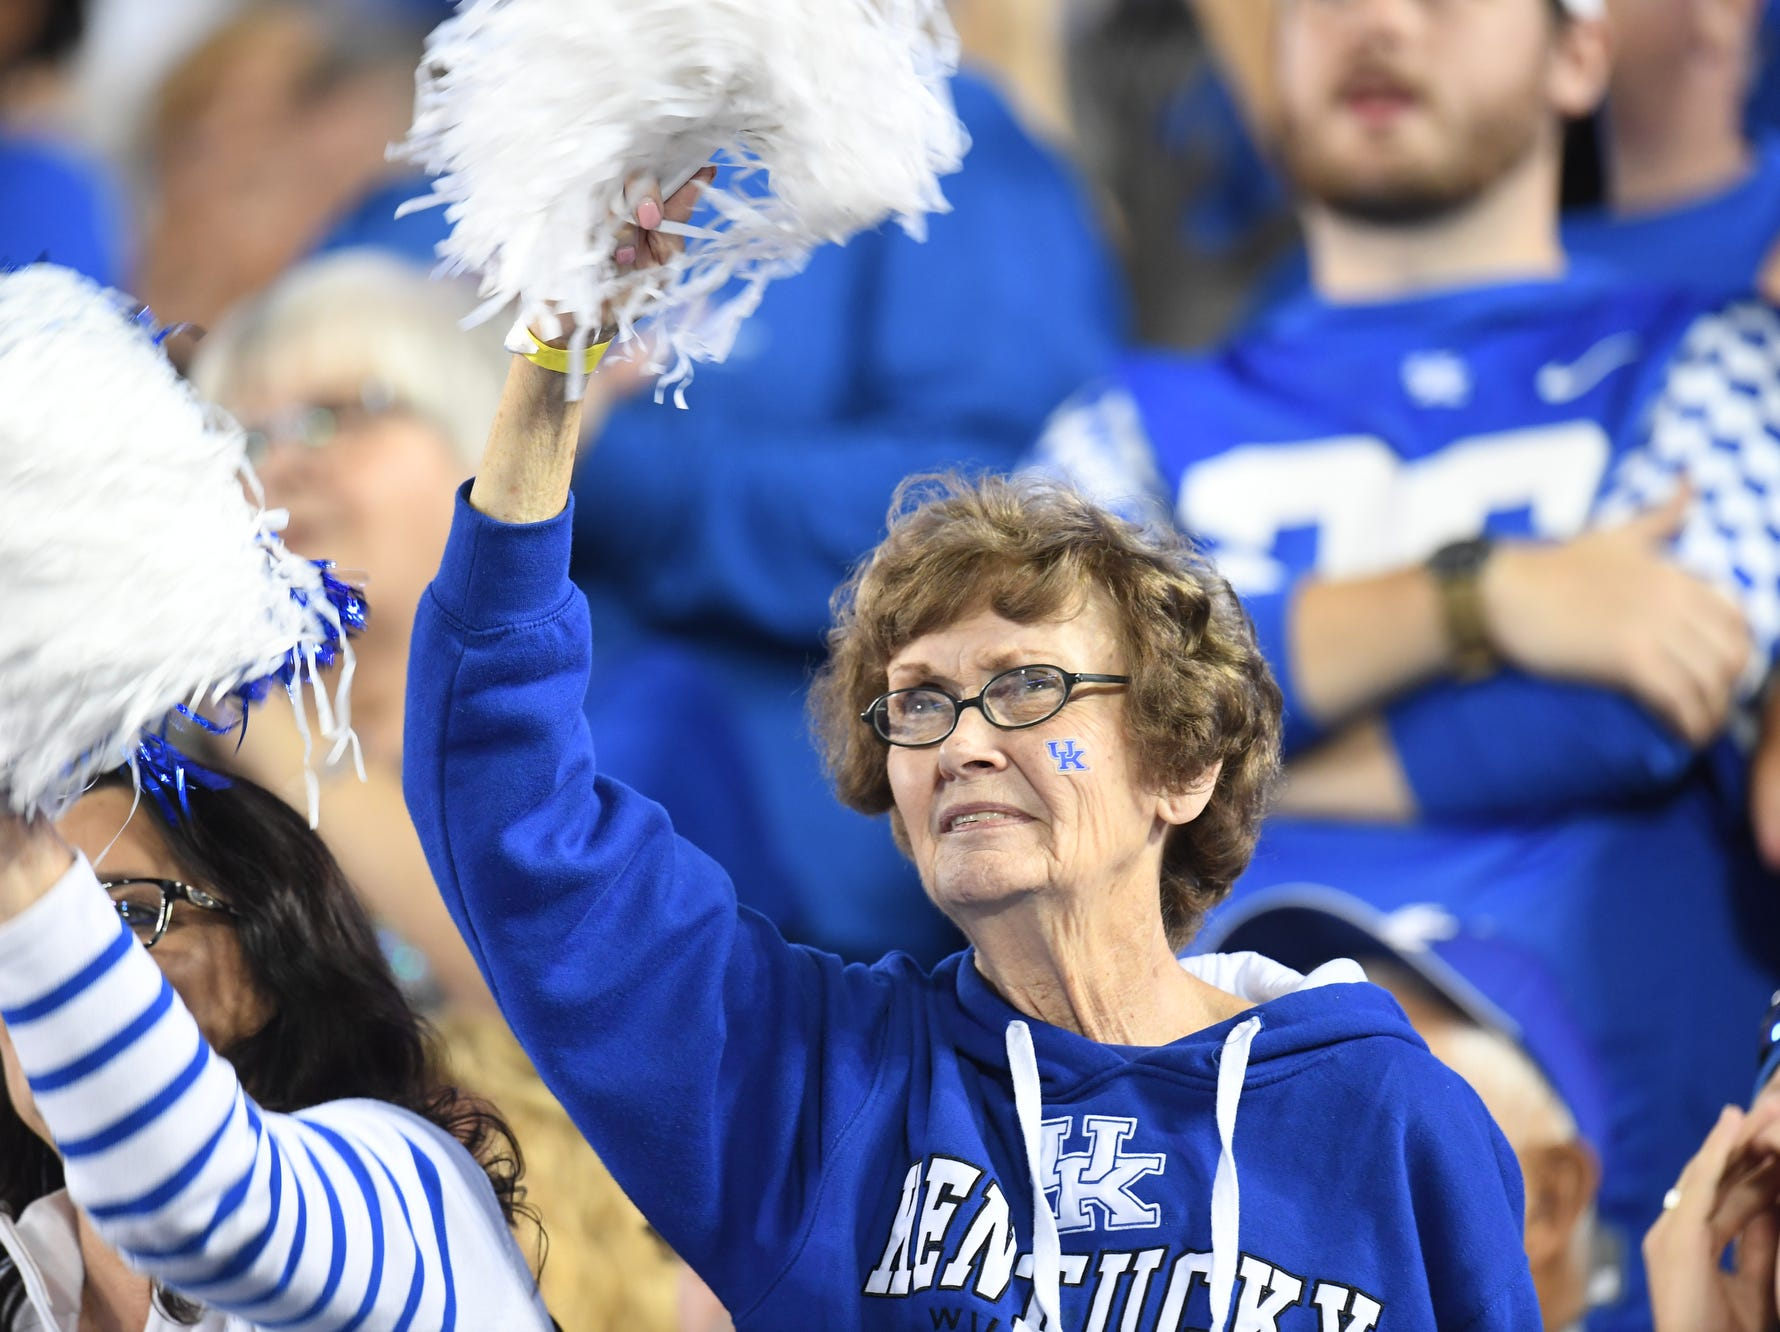 UK fan during the University of Kentucky football game against South Carolina at Kroger Field in Lexington, Kentucky on Saturday, September 29, 2018.